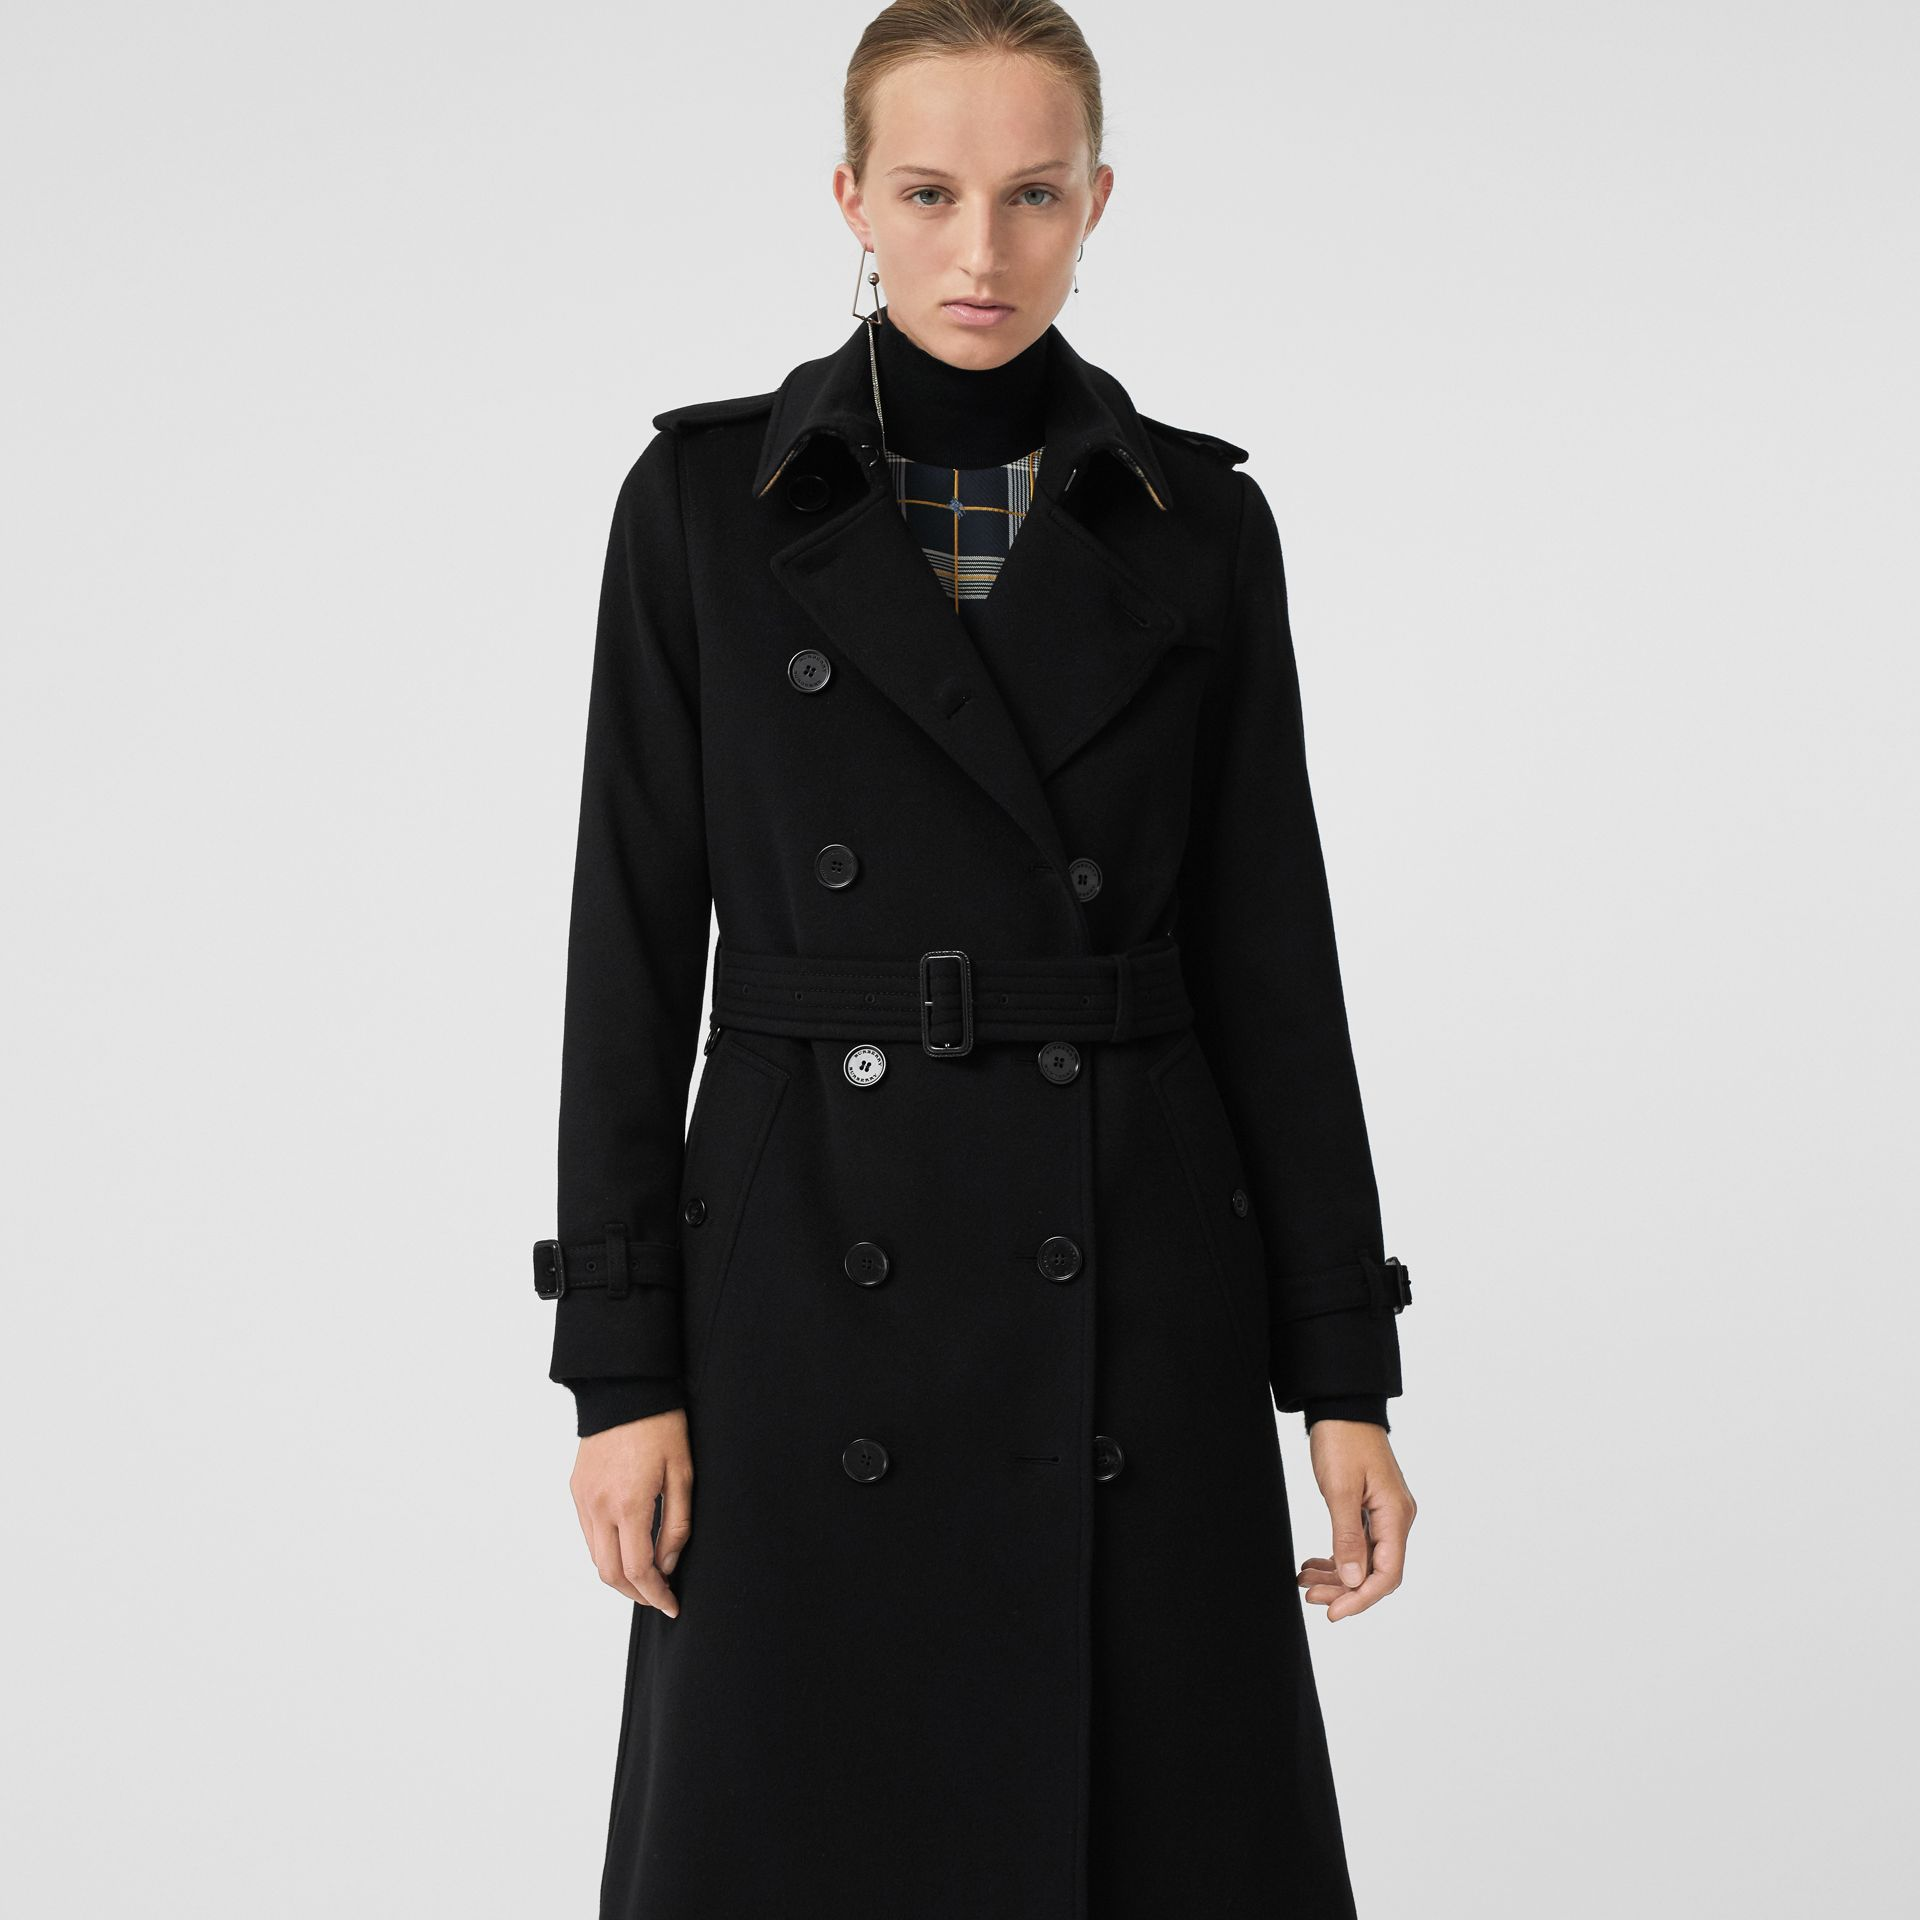 Cashmere Trench Coat in Black - Women | Burberry - gallery image 6